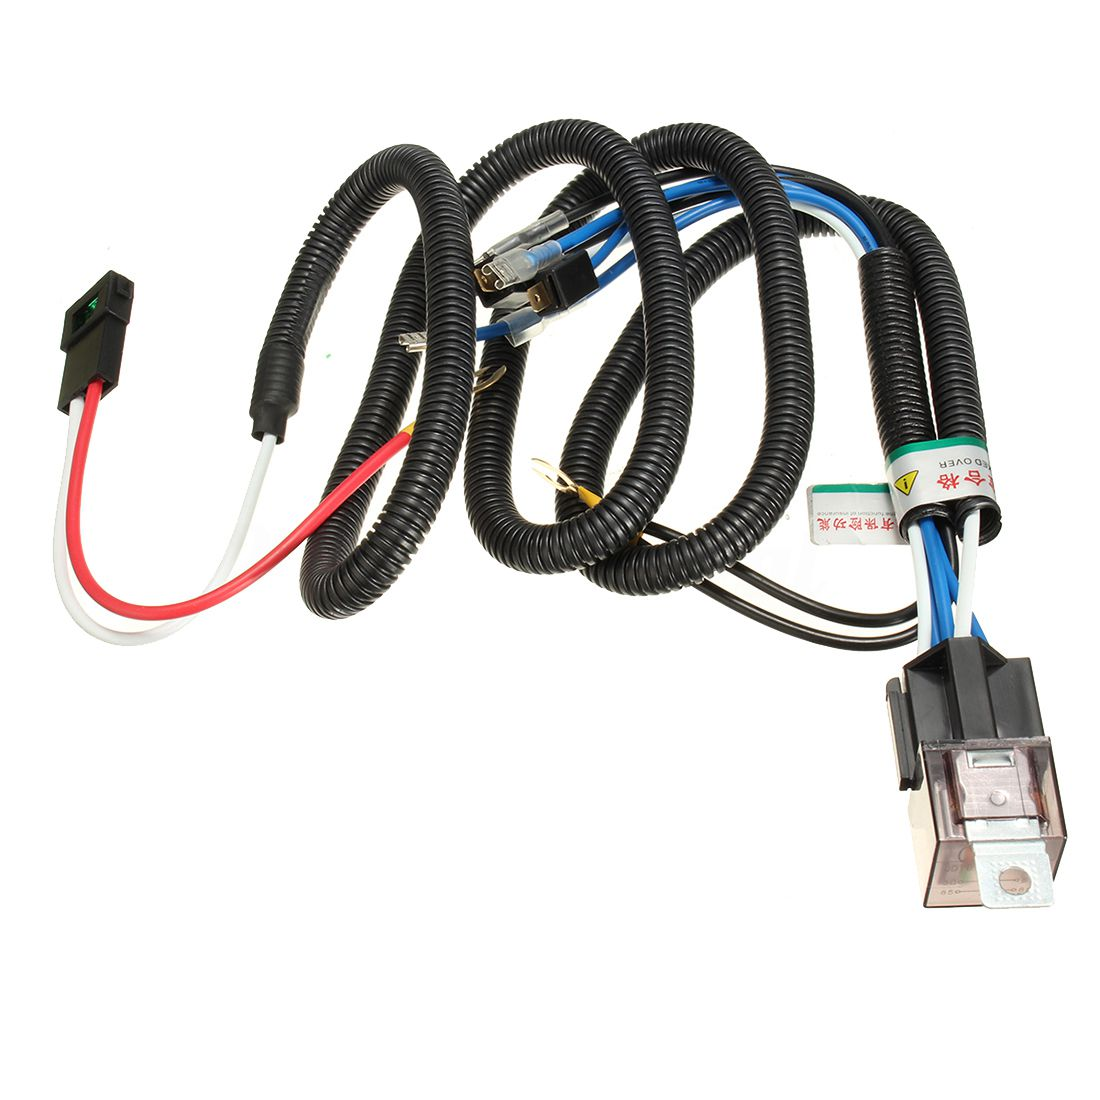 12v Truck Car Horn Relay Wiring Harness Kit For Grille Mount Blast Automotive Melted Tone Hor H2b7